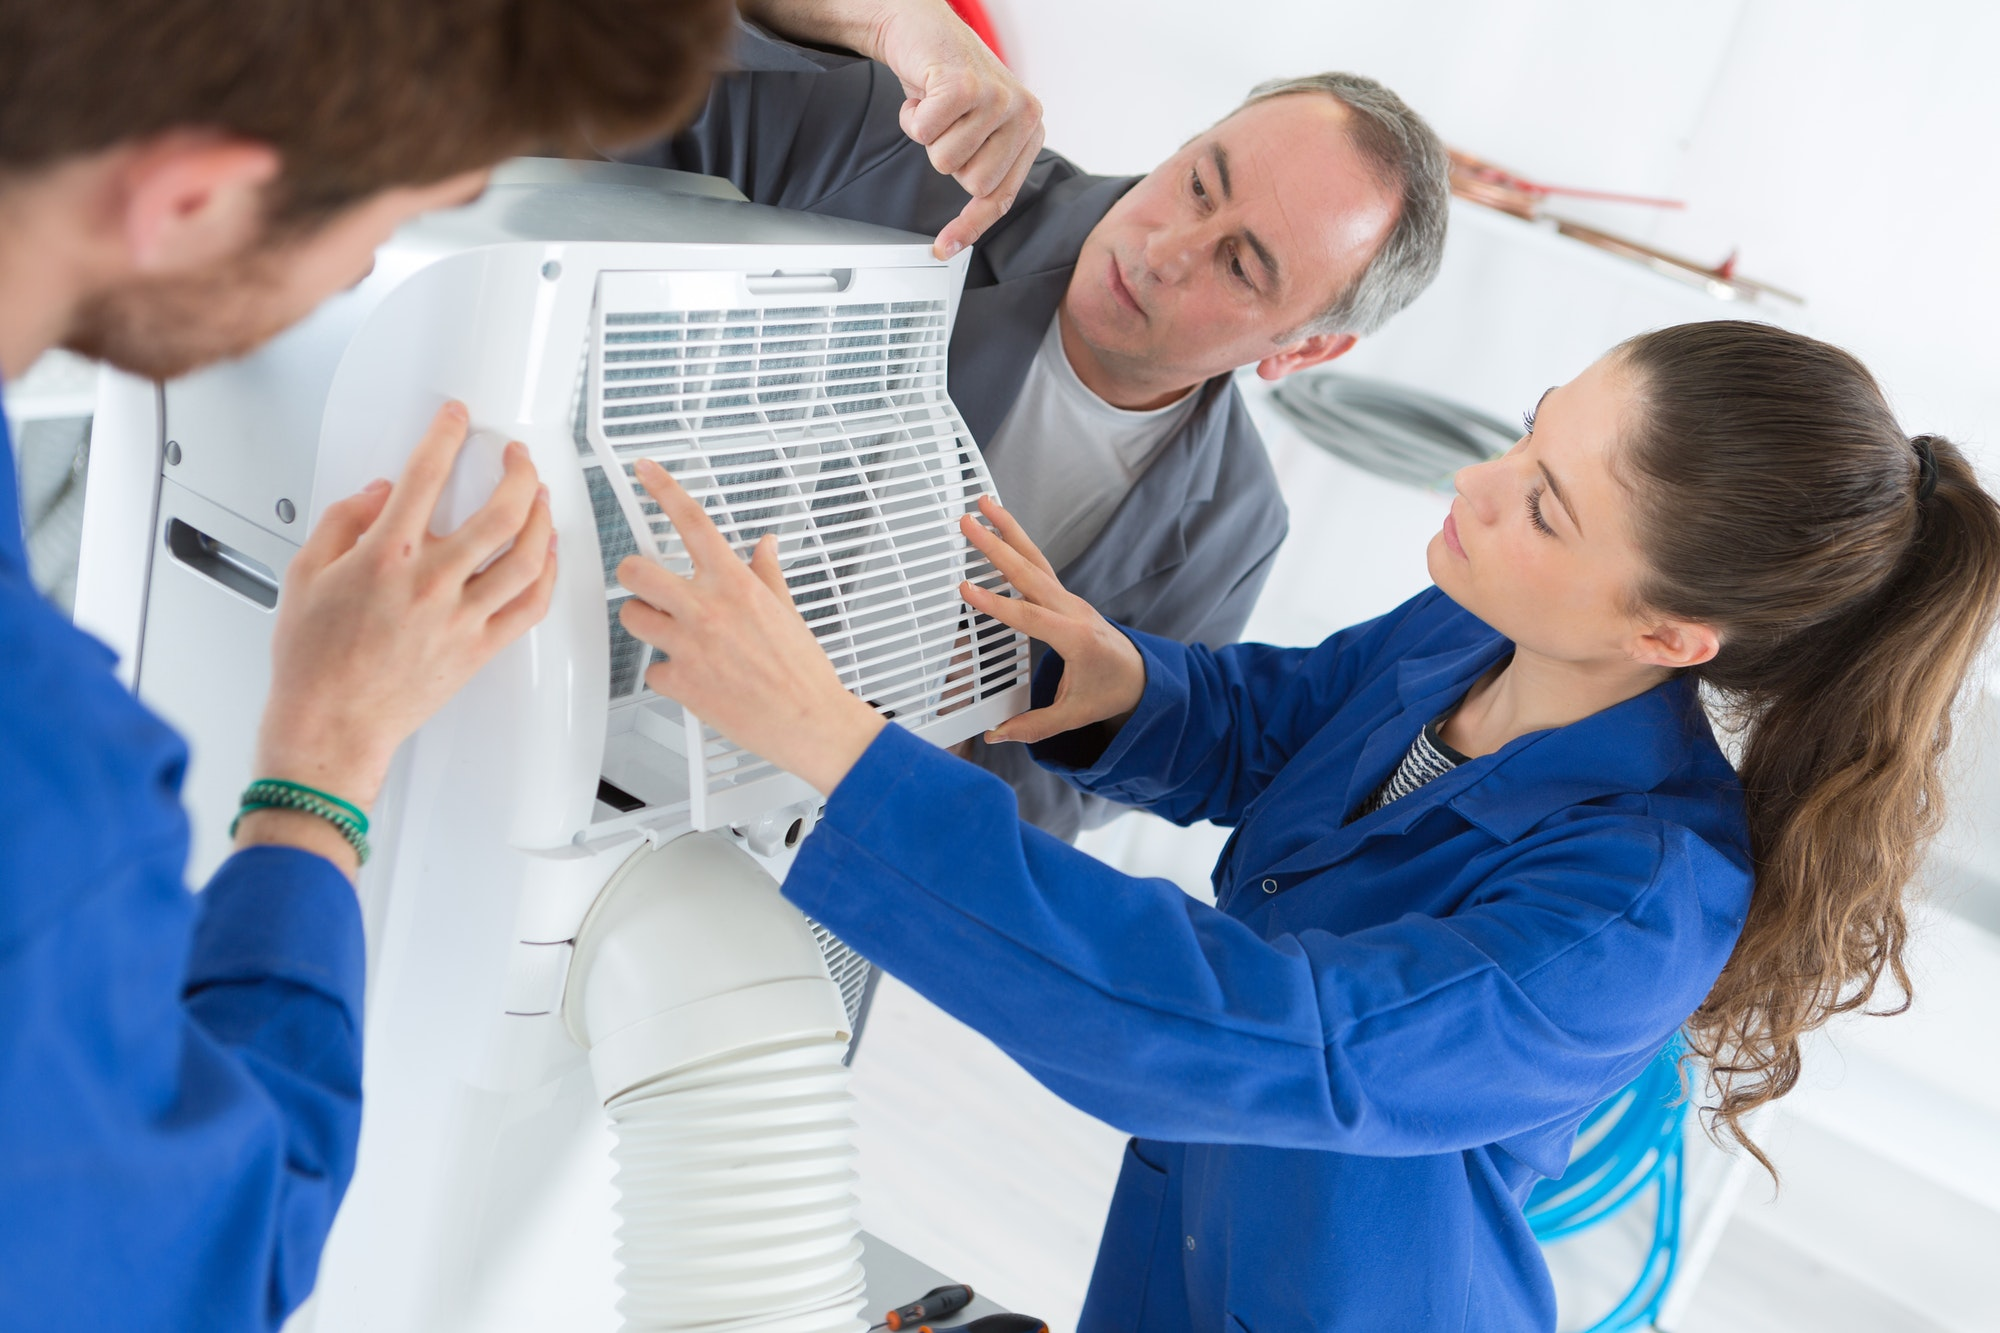 Trainees working on an air conditioning unit